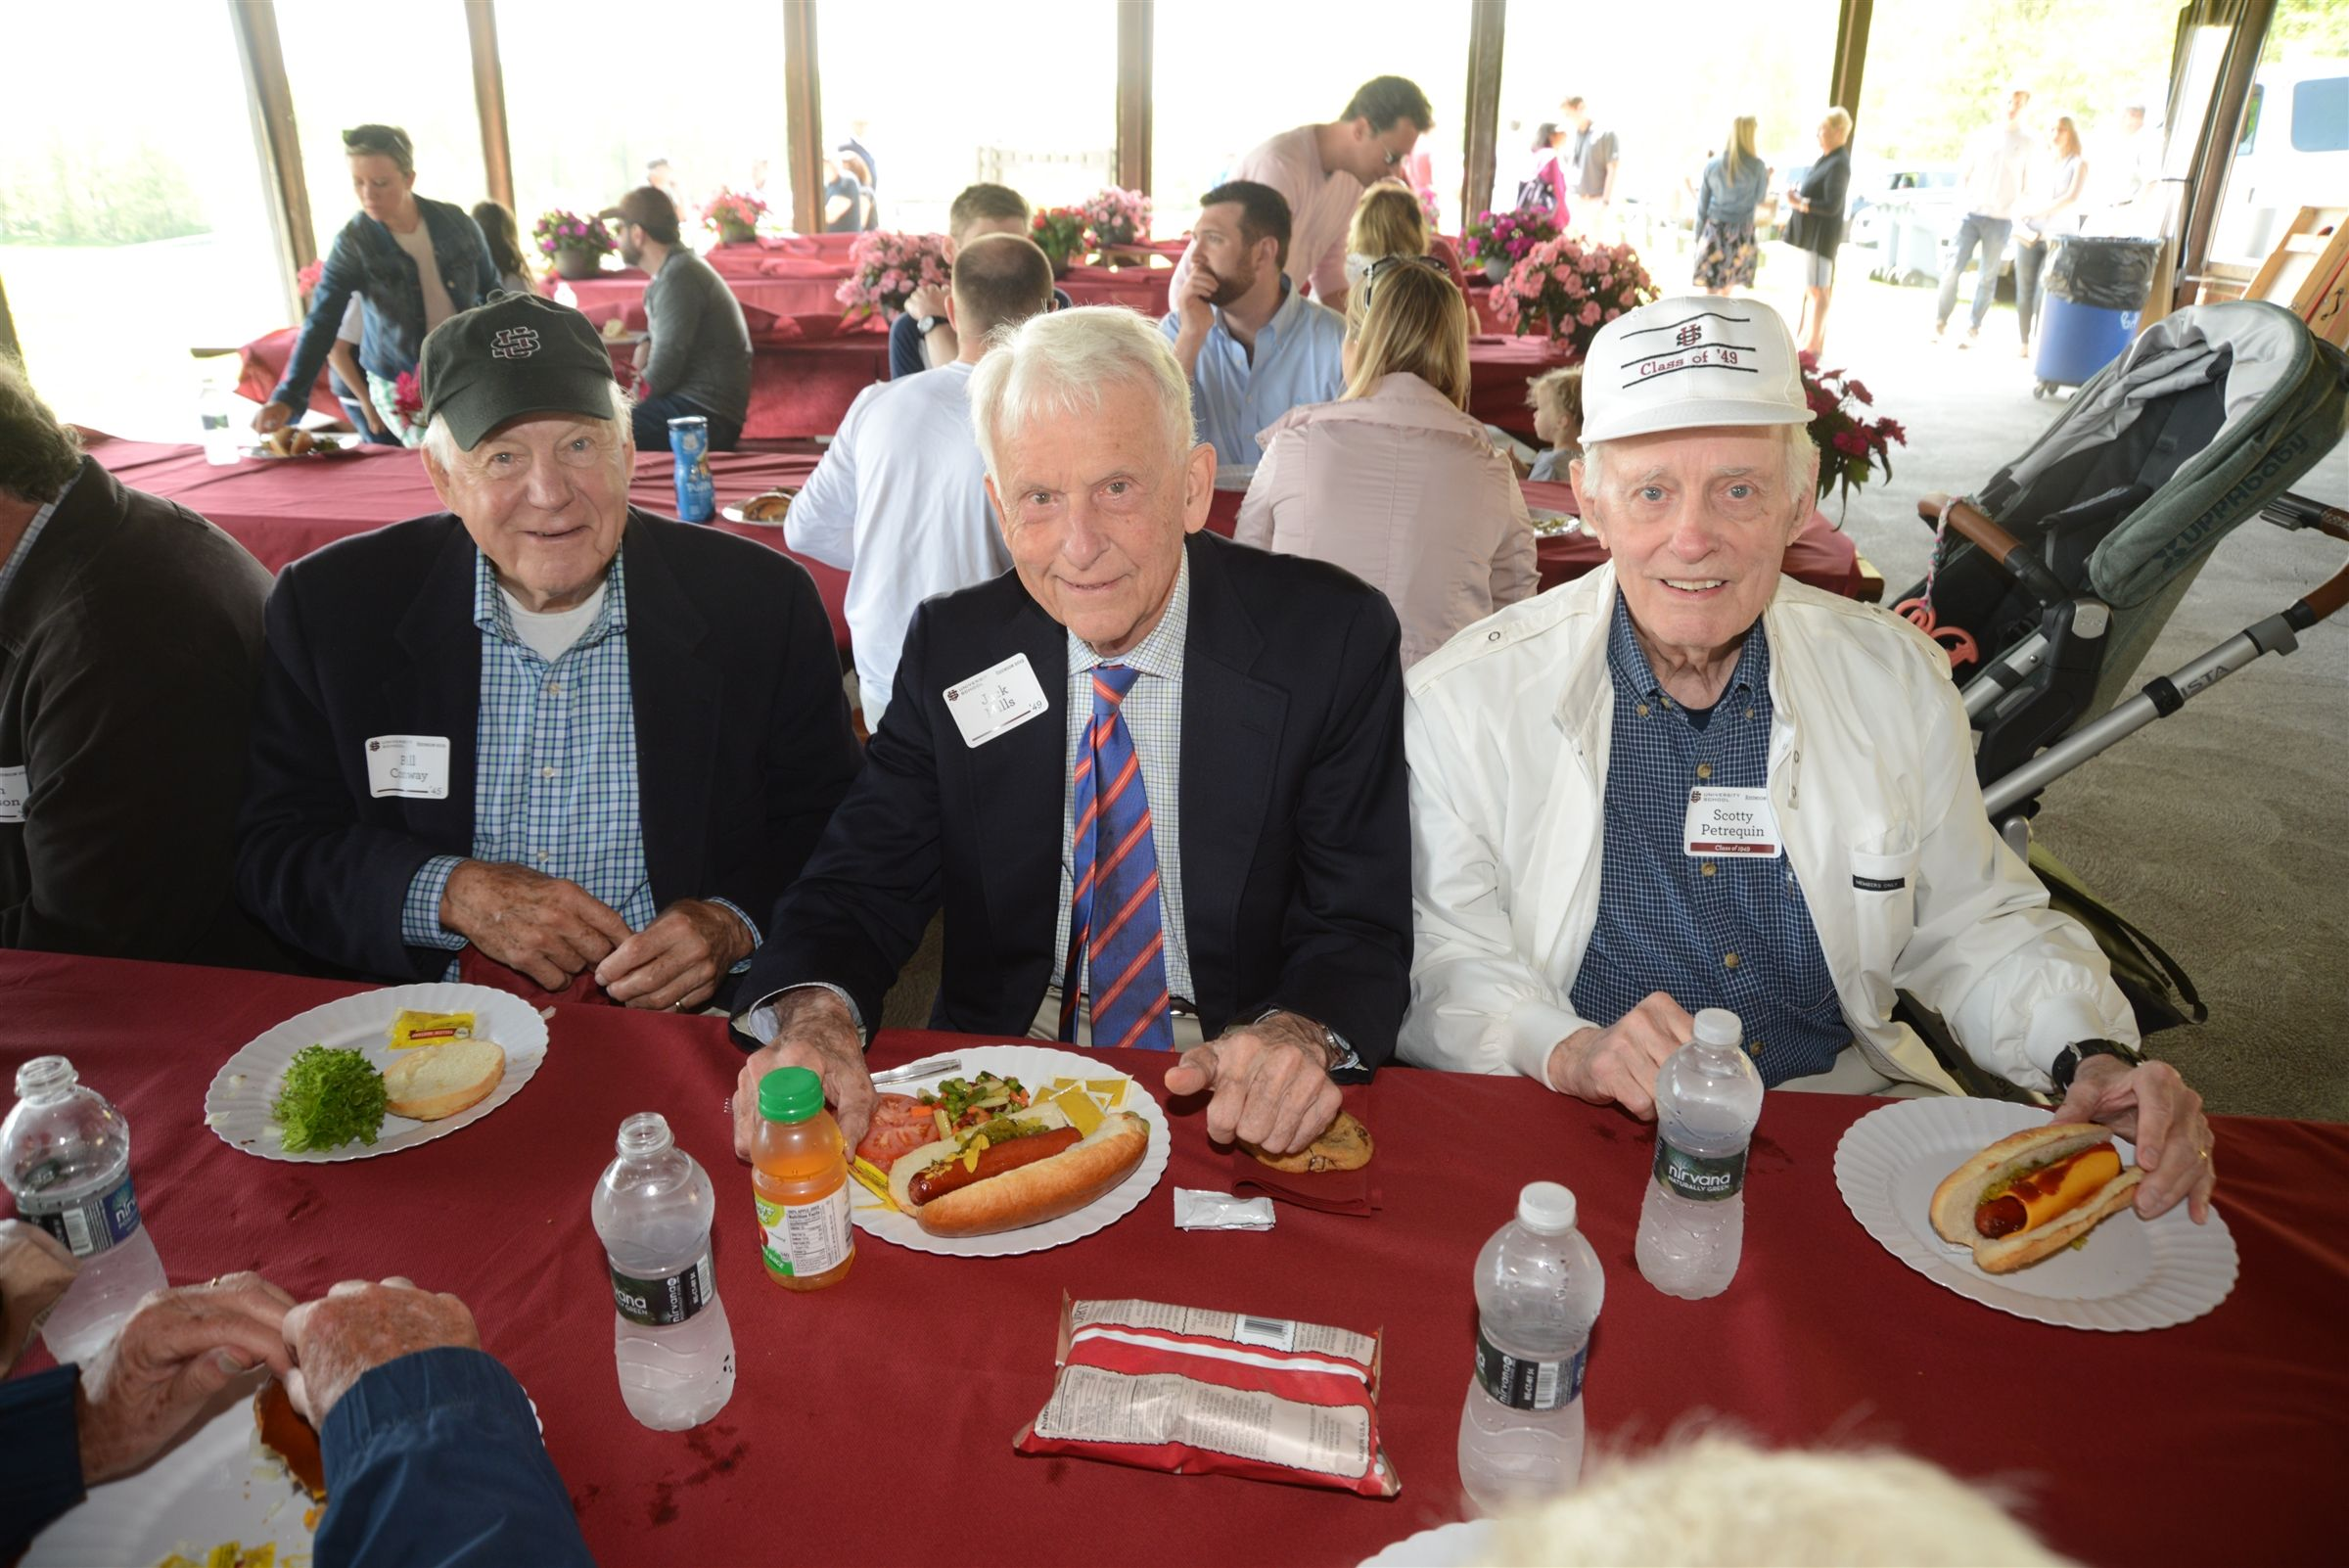 Bill Conway '45, Jack Mills '49, and Scott Petrequin '49 enjoy some picnic fare!